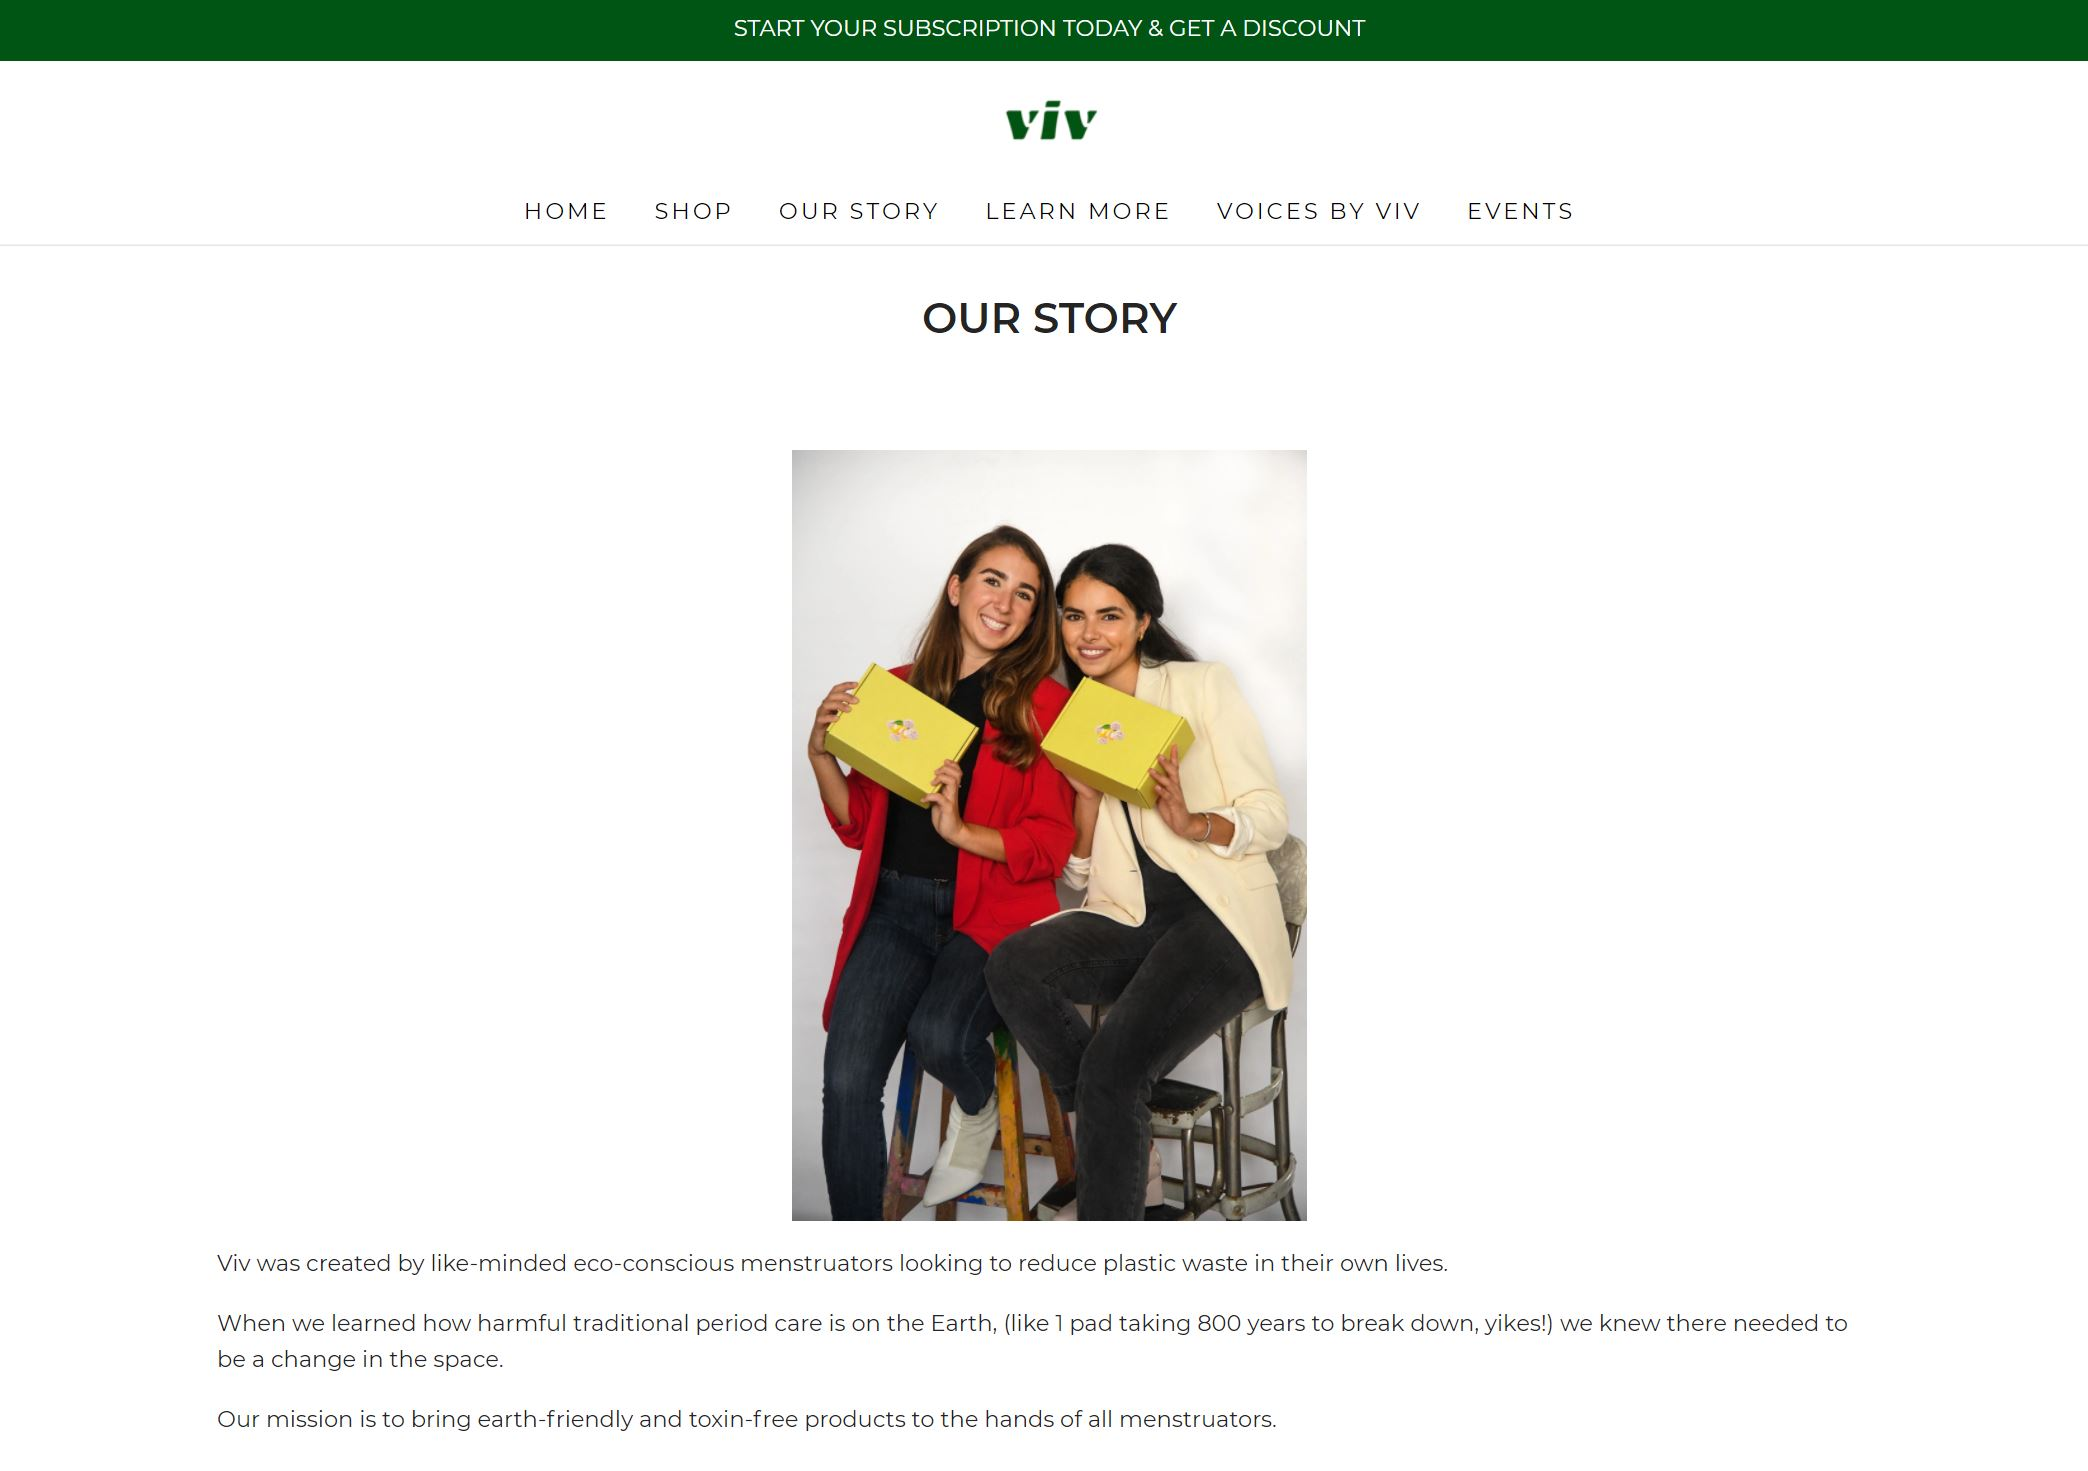 Viv Our Story Page